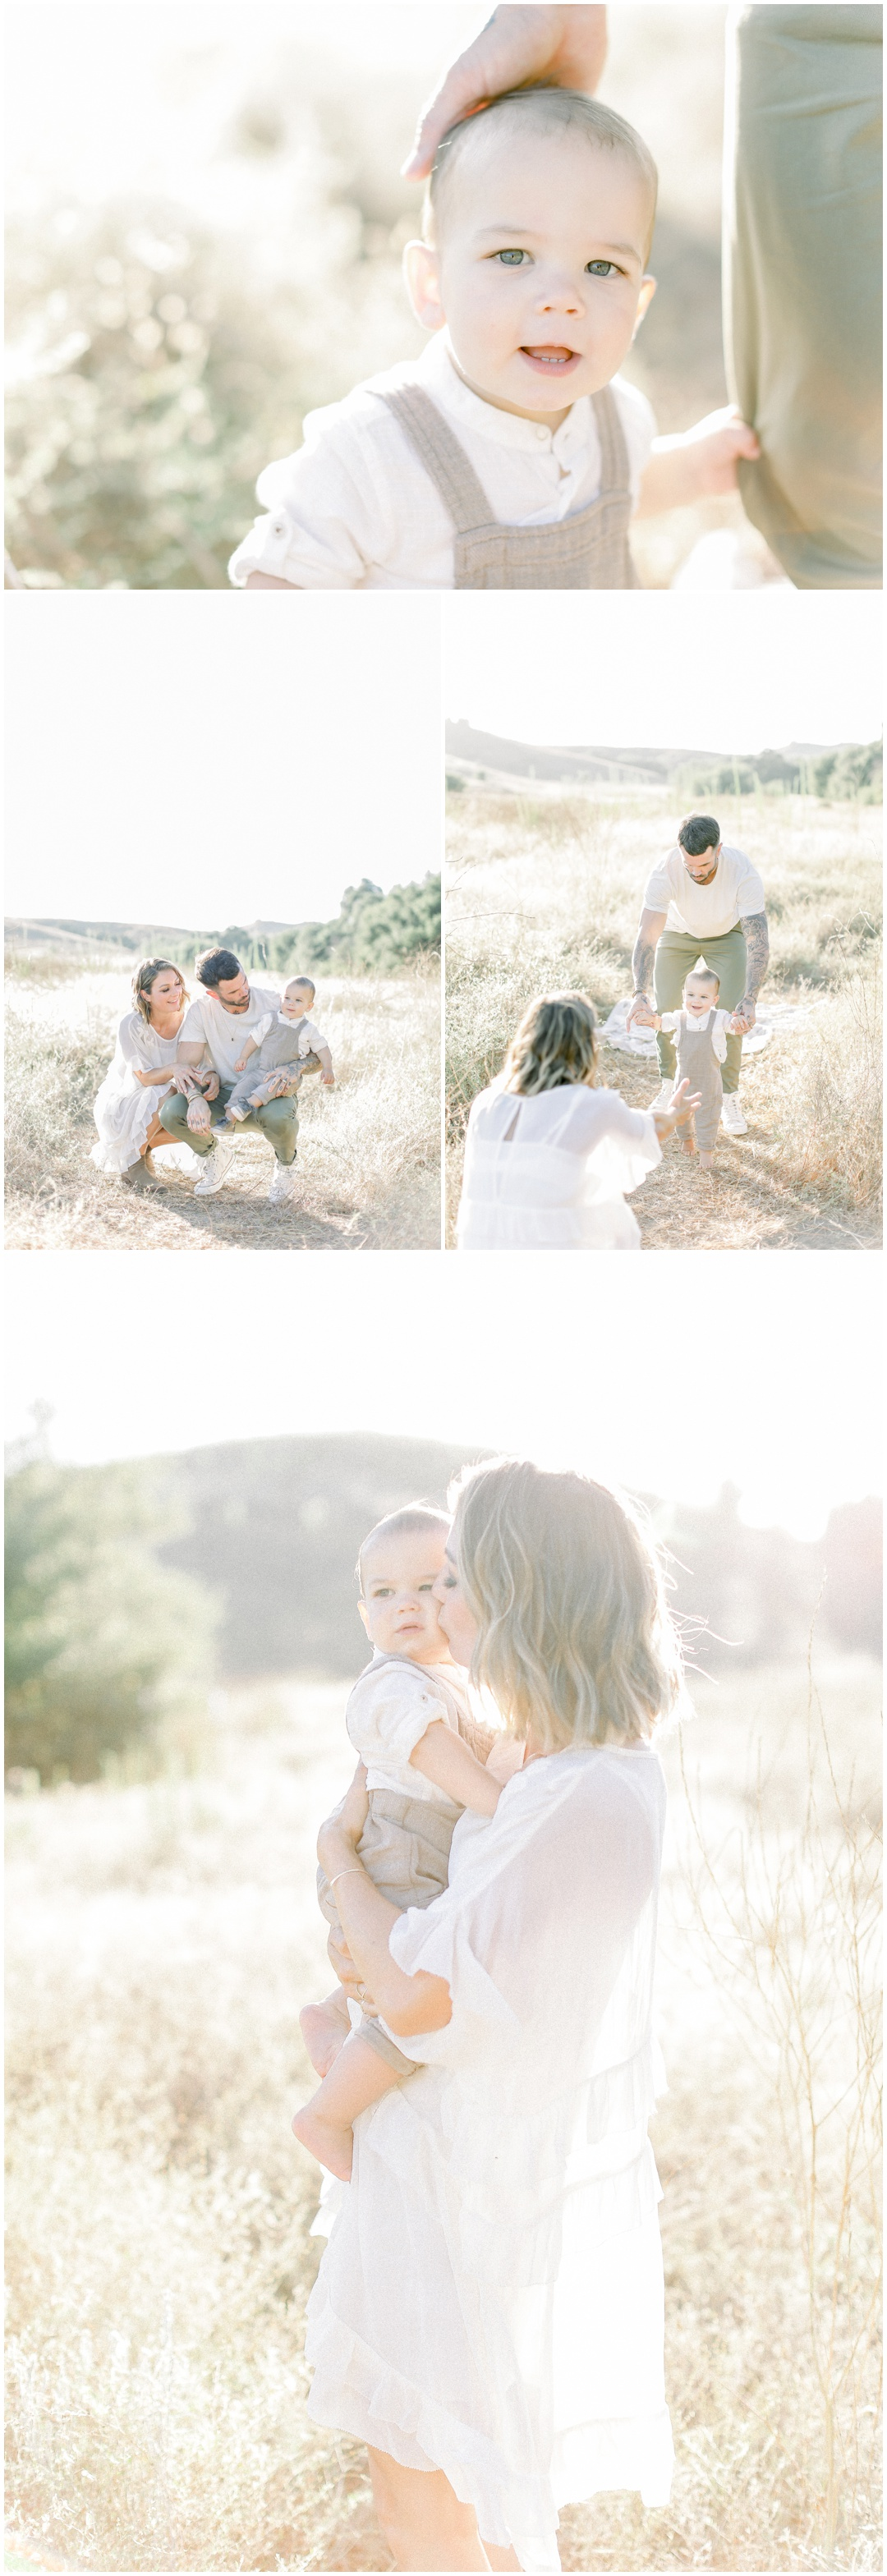 Newport_Beach_Family_Session_Orange_County_Family_Photographer_Thomas_Riley_Wilderness_Park_Carrie_Stotts_Sean_Stotts__4310.jpg